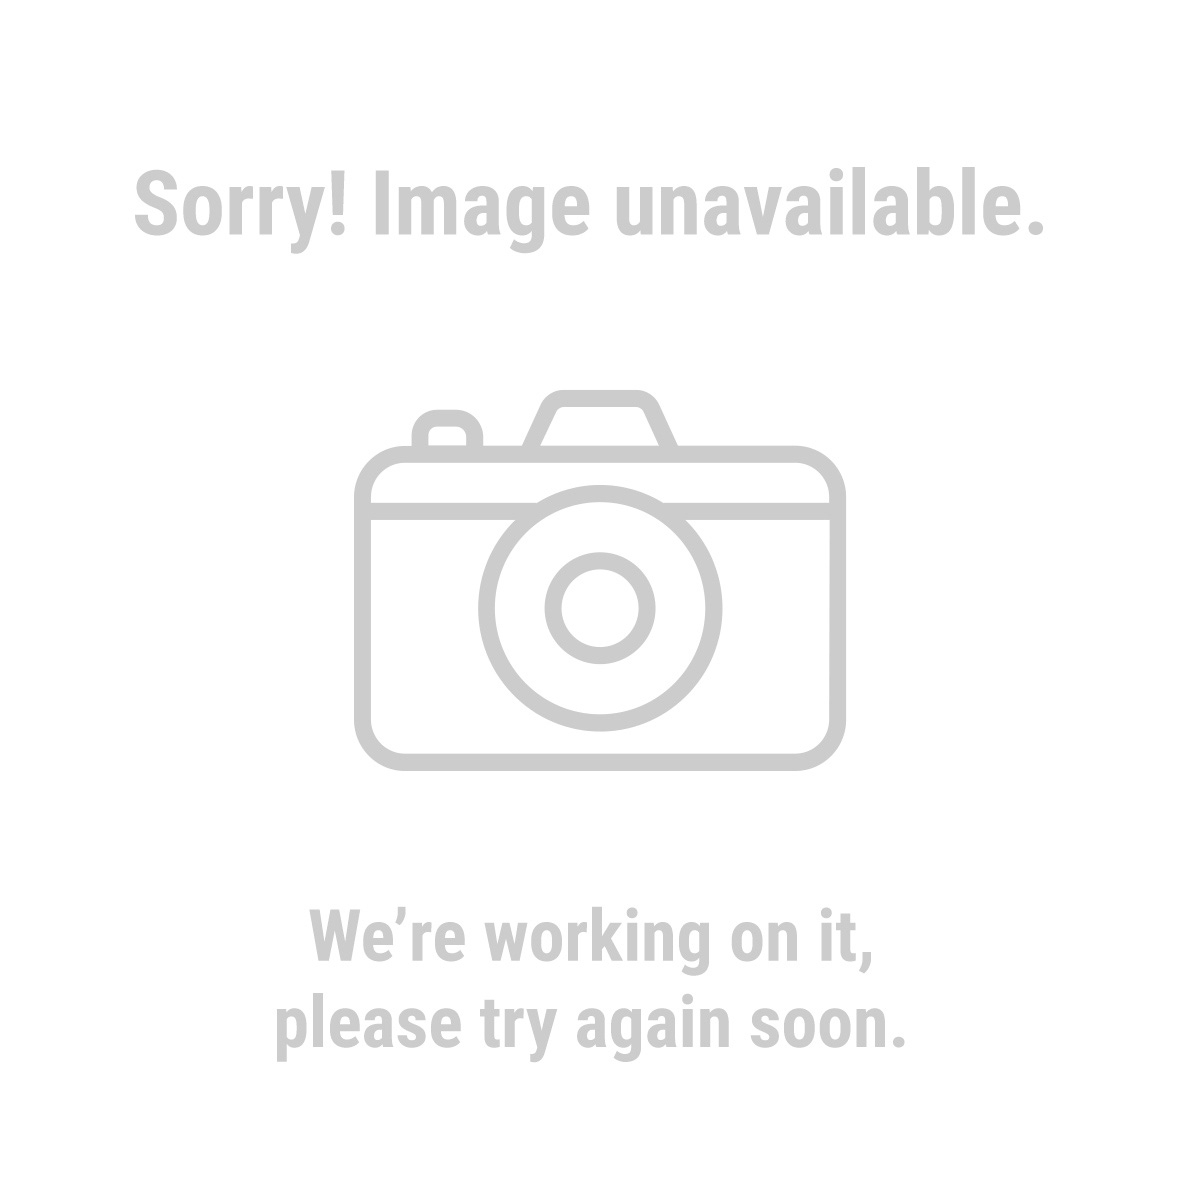 Storehouse 67564 144 Piece Extra Long Cotter Pin Assortment